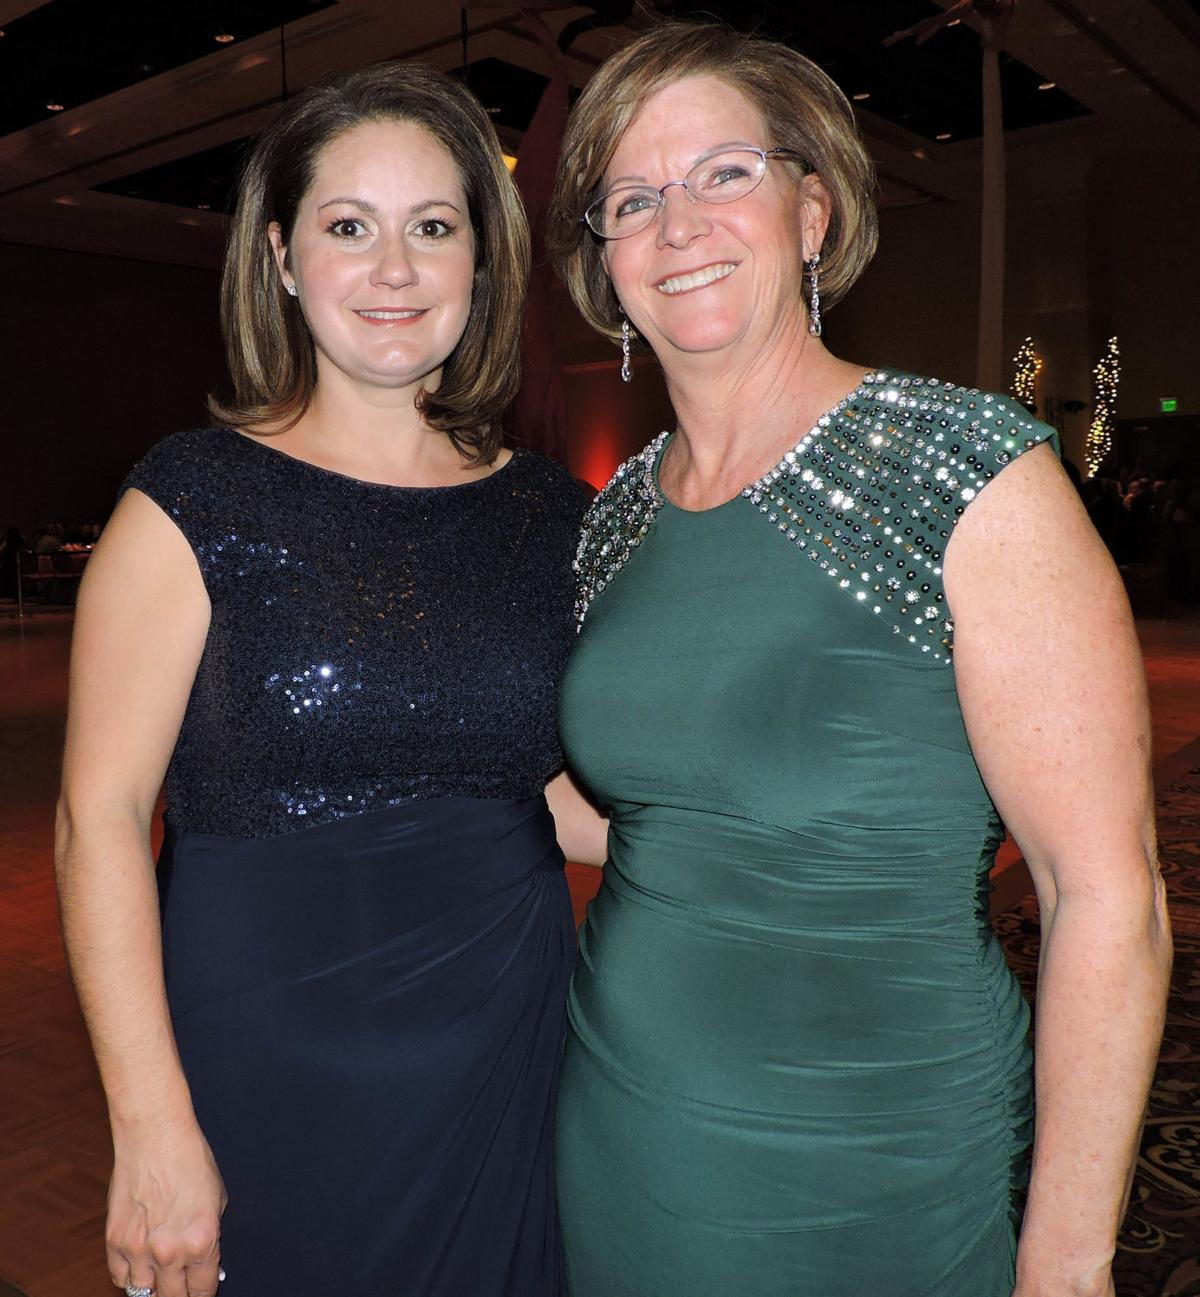 Margo, left, and Debbie Chandler, chair of the Heart Ball. 021917 Photo by Linda Navarro